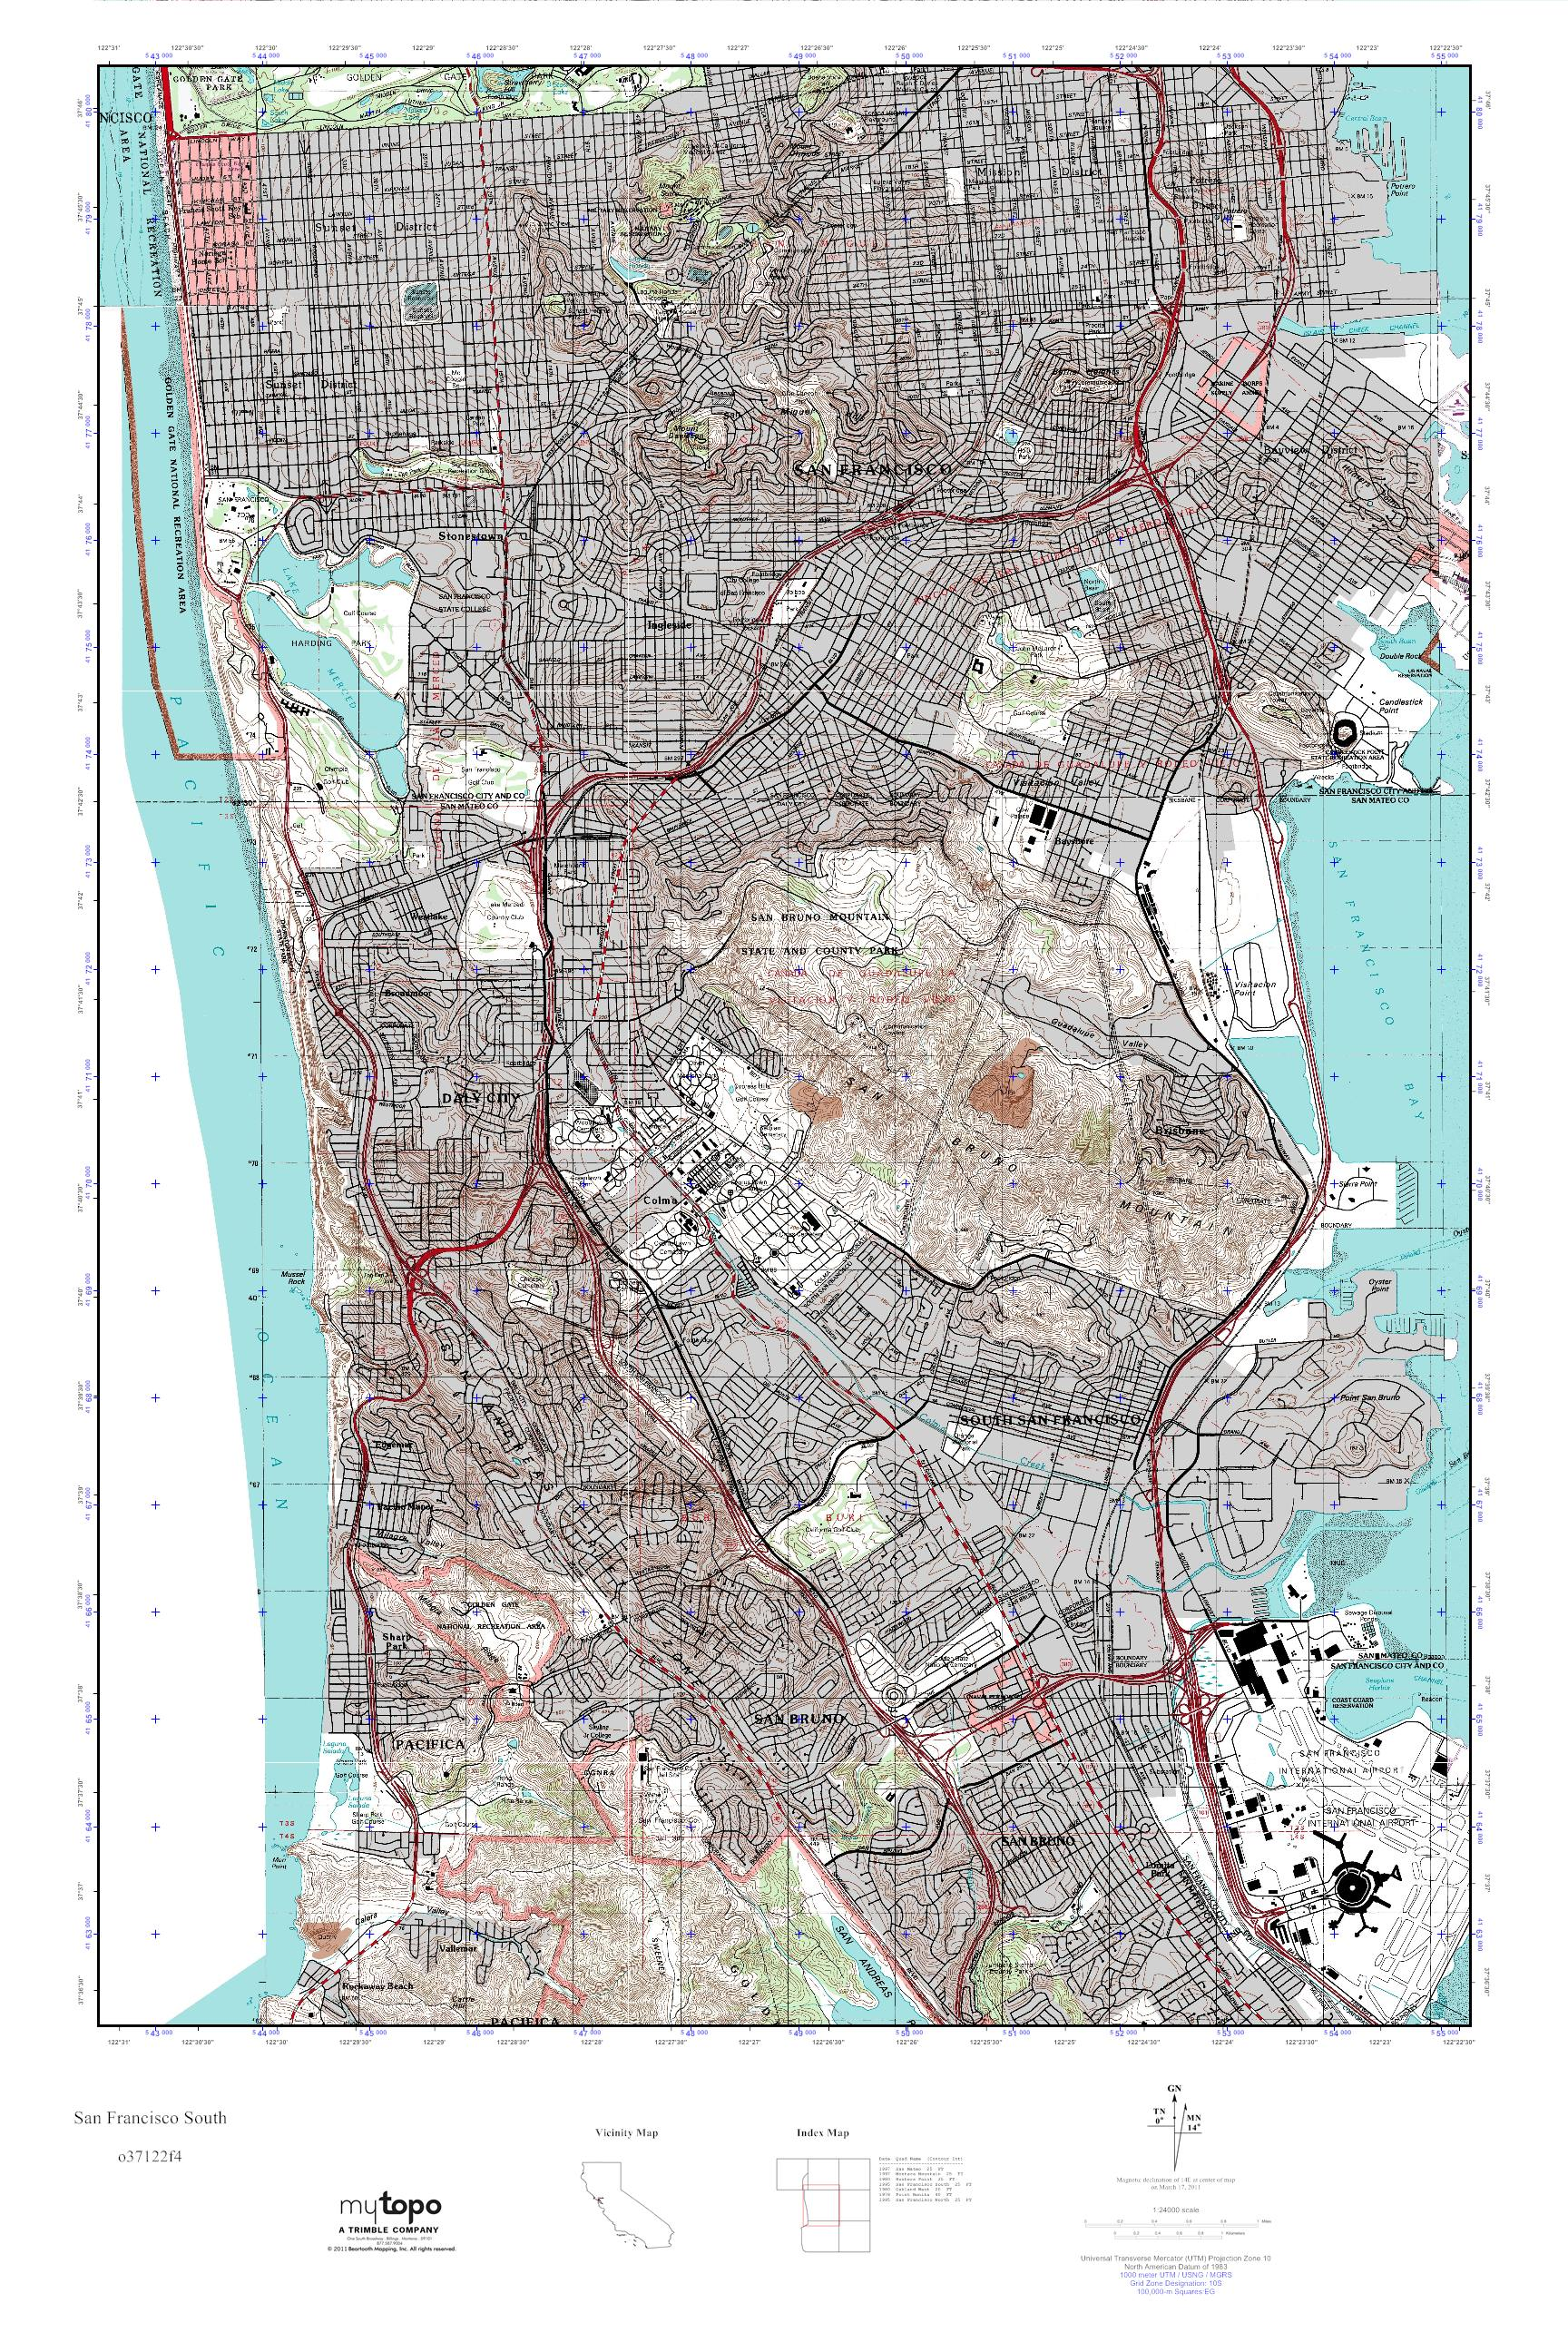 MyTopo San Francisco South, California USGS Quad Topo Map